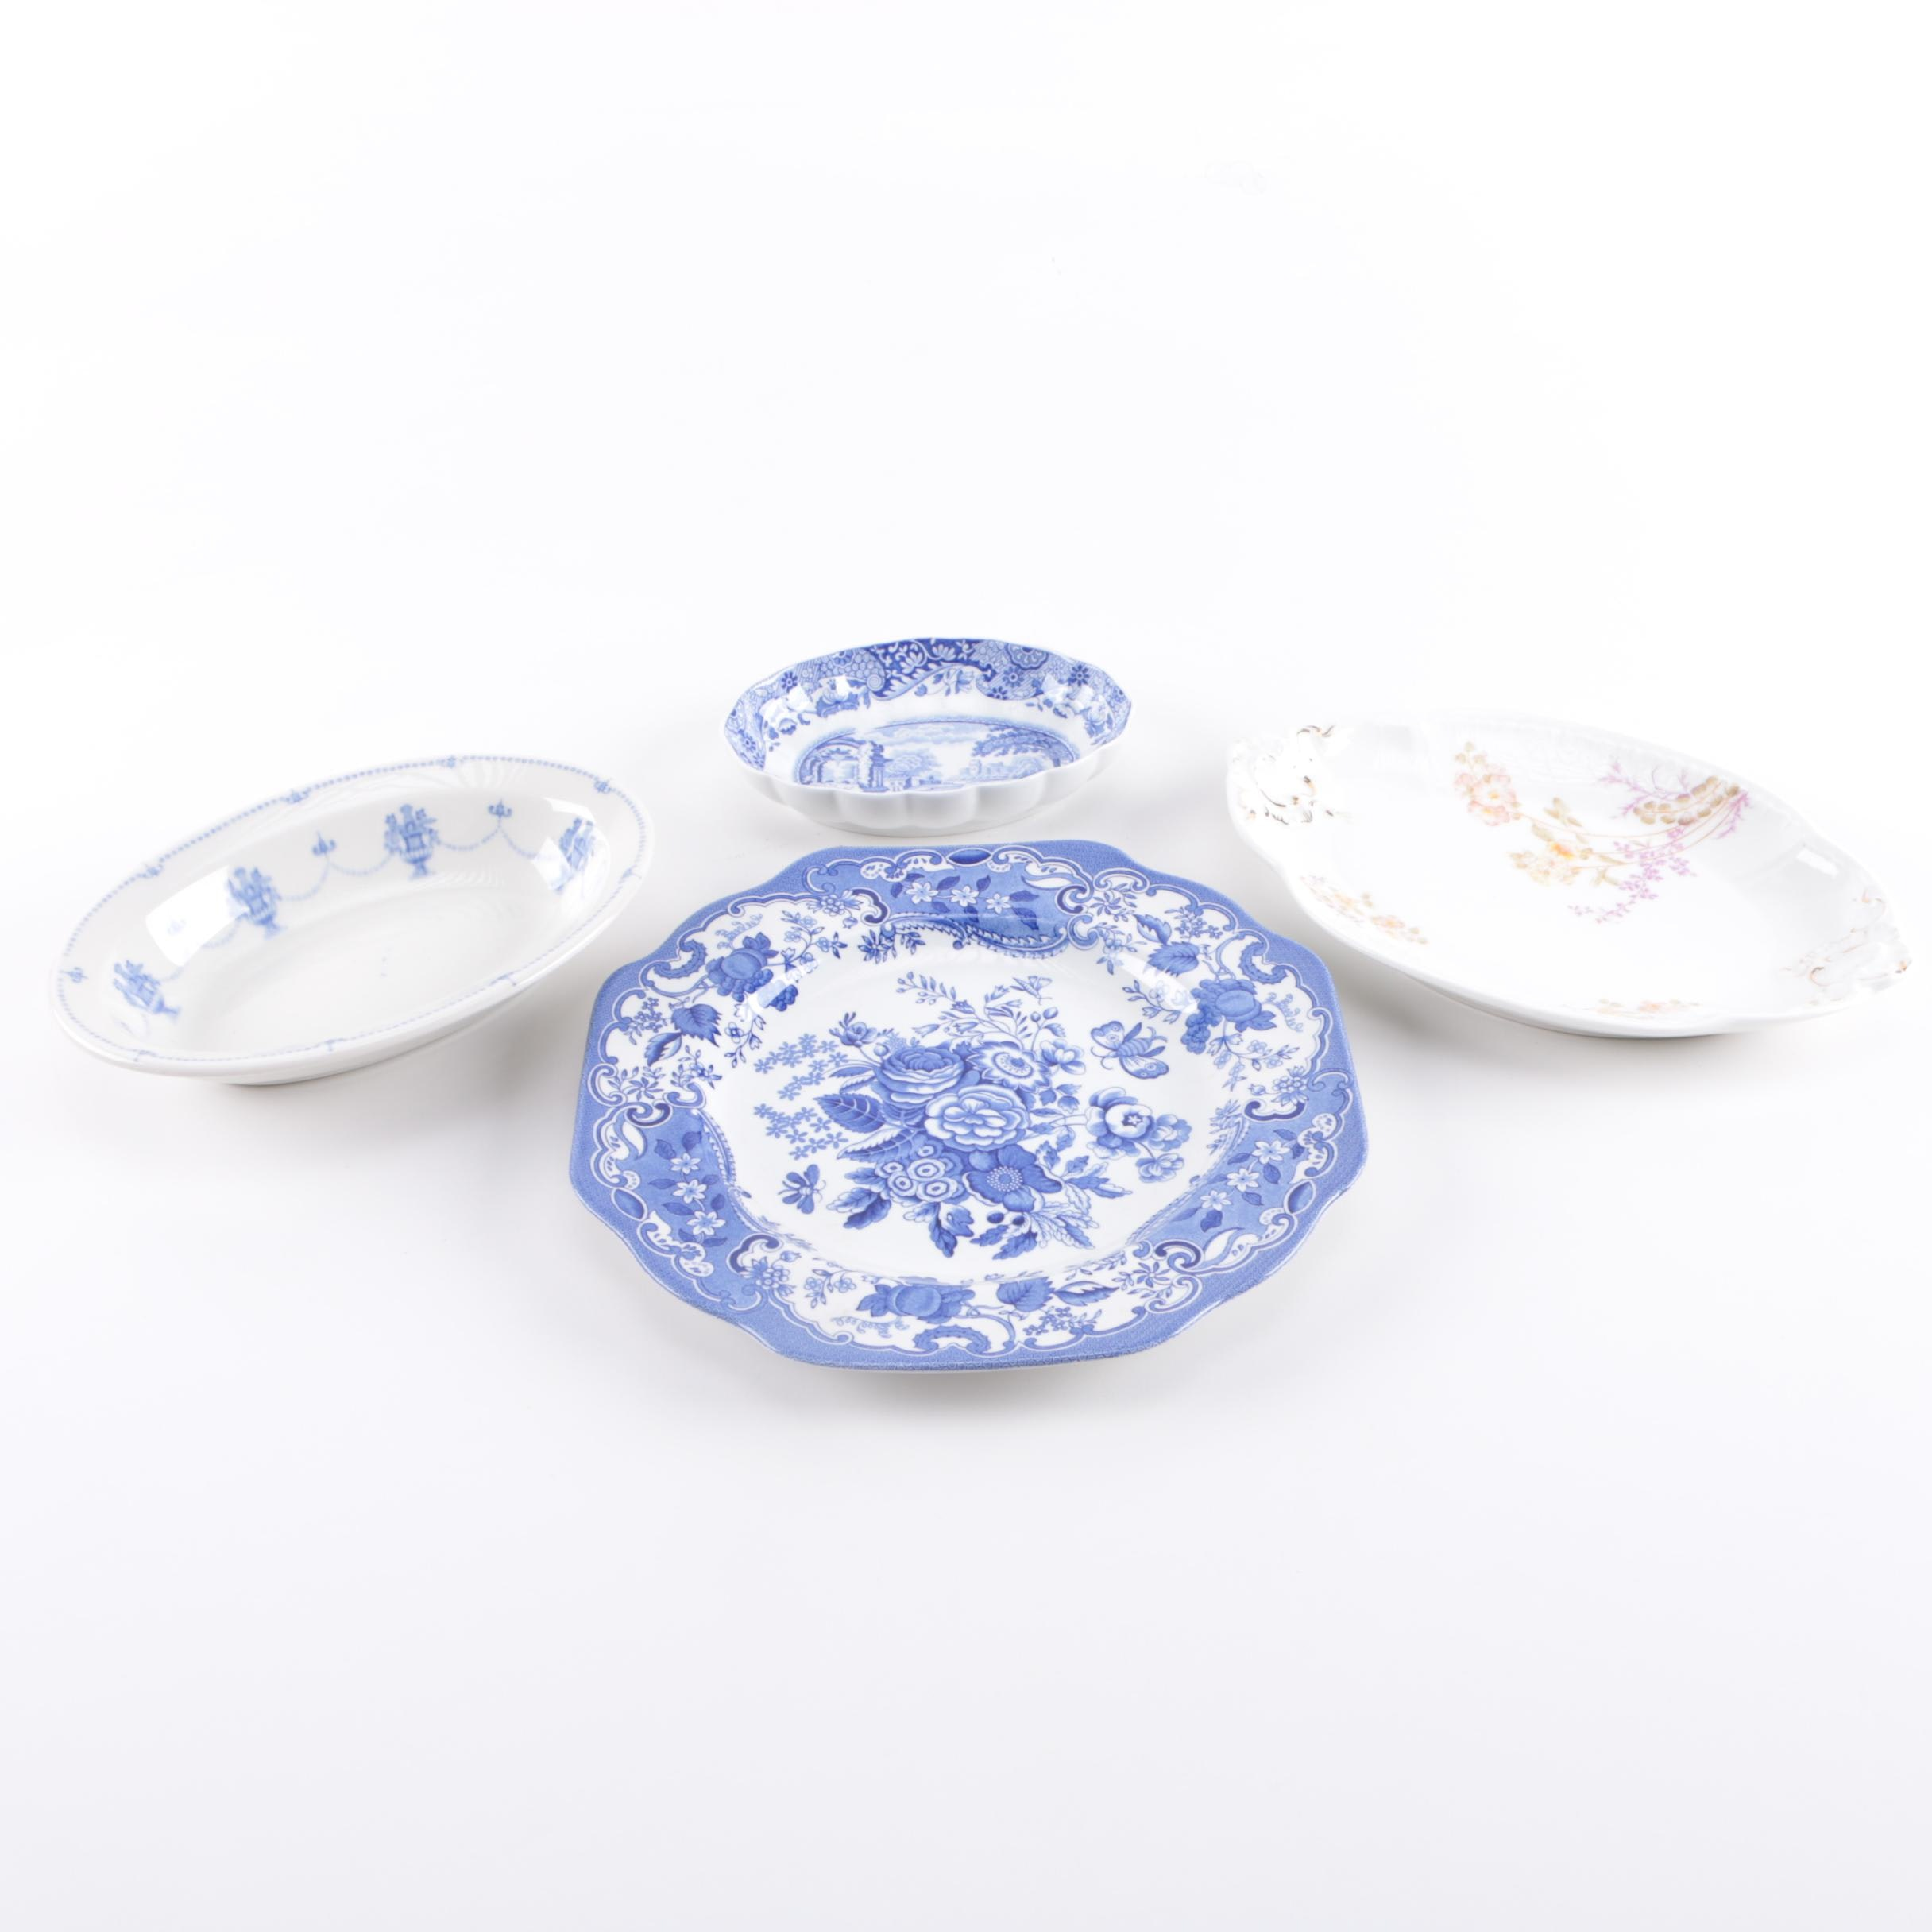 China Featuring Spode and Limoges